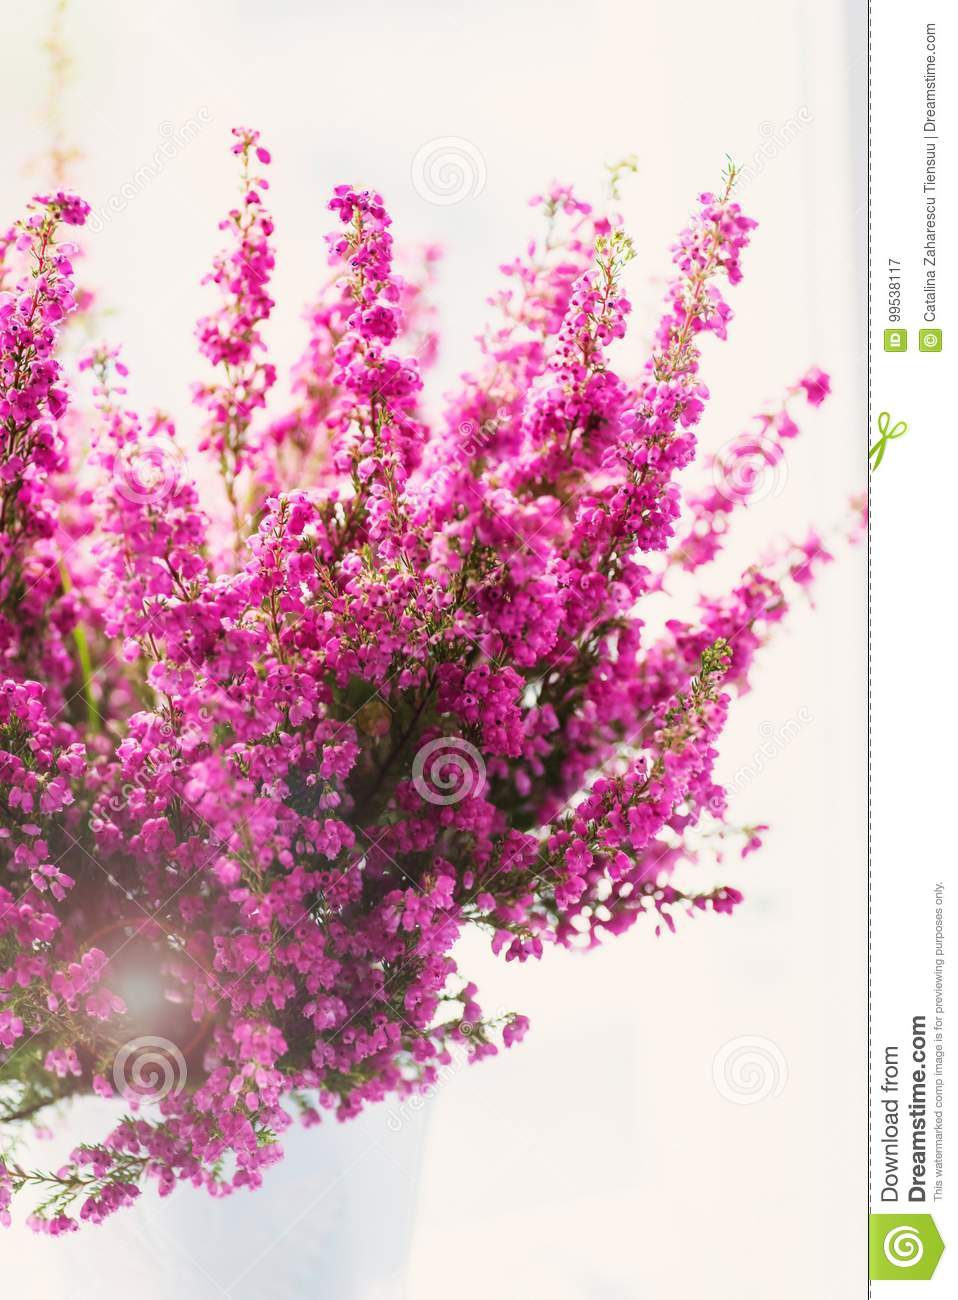 Erica Gracilis Erica Gracilis Winter Heather In Full Blossom Stock Image Image